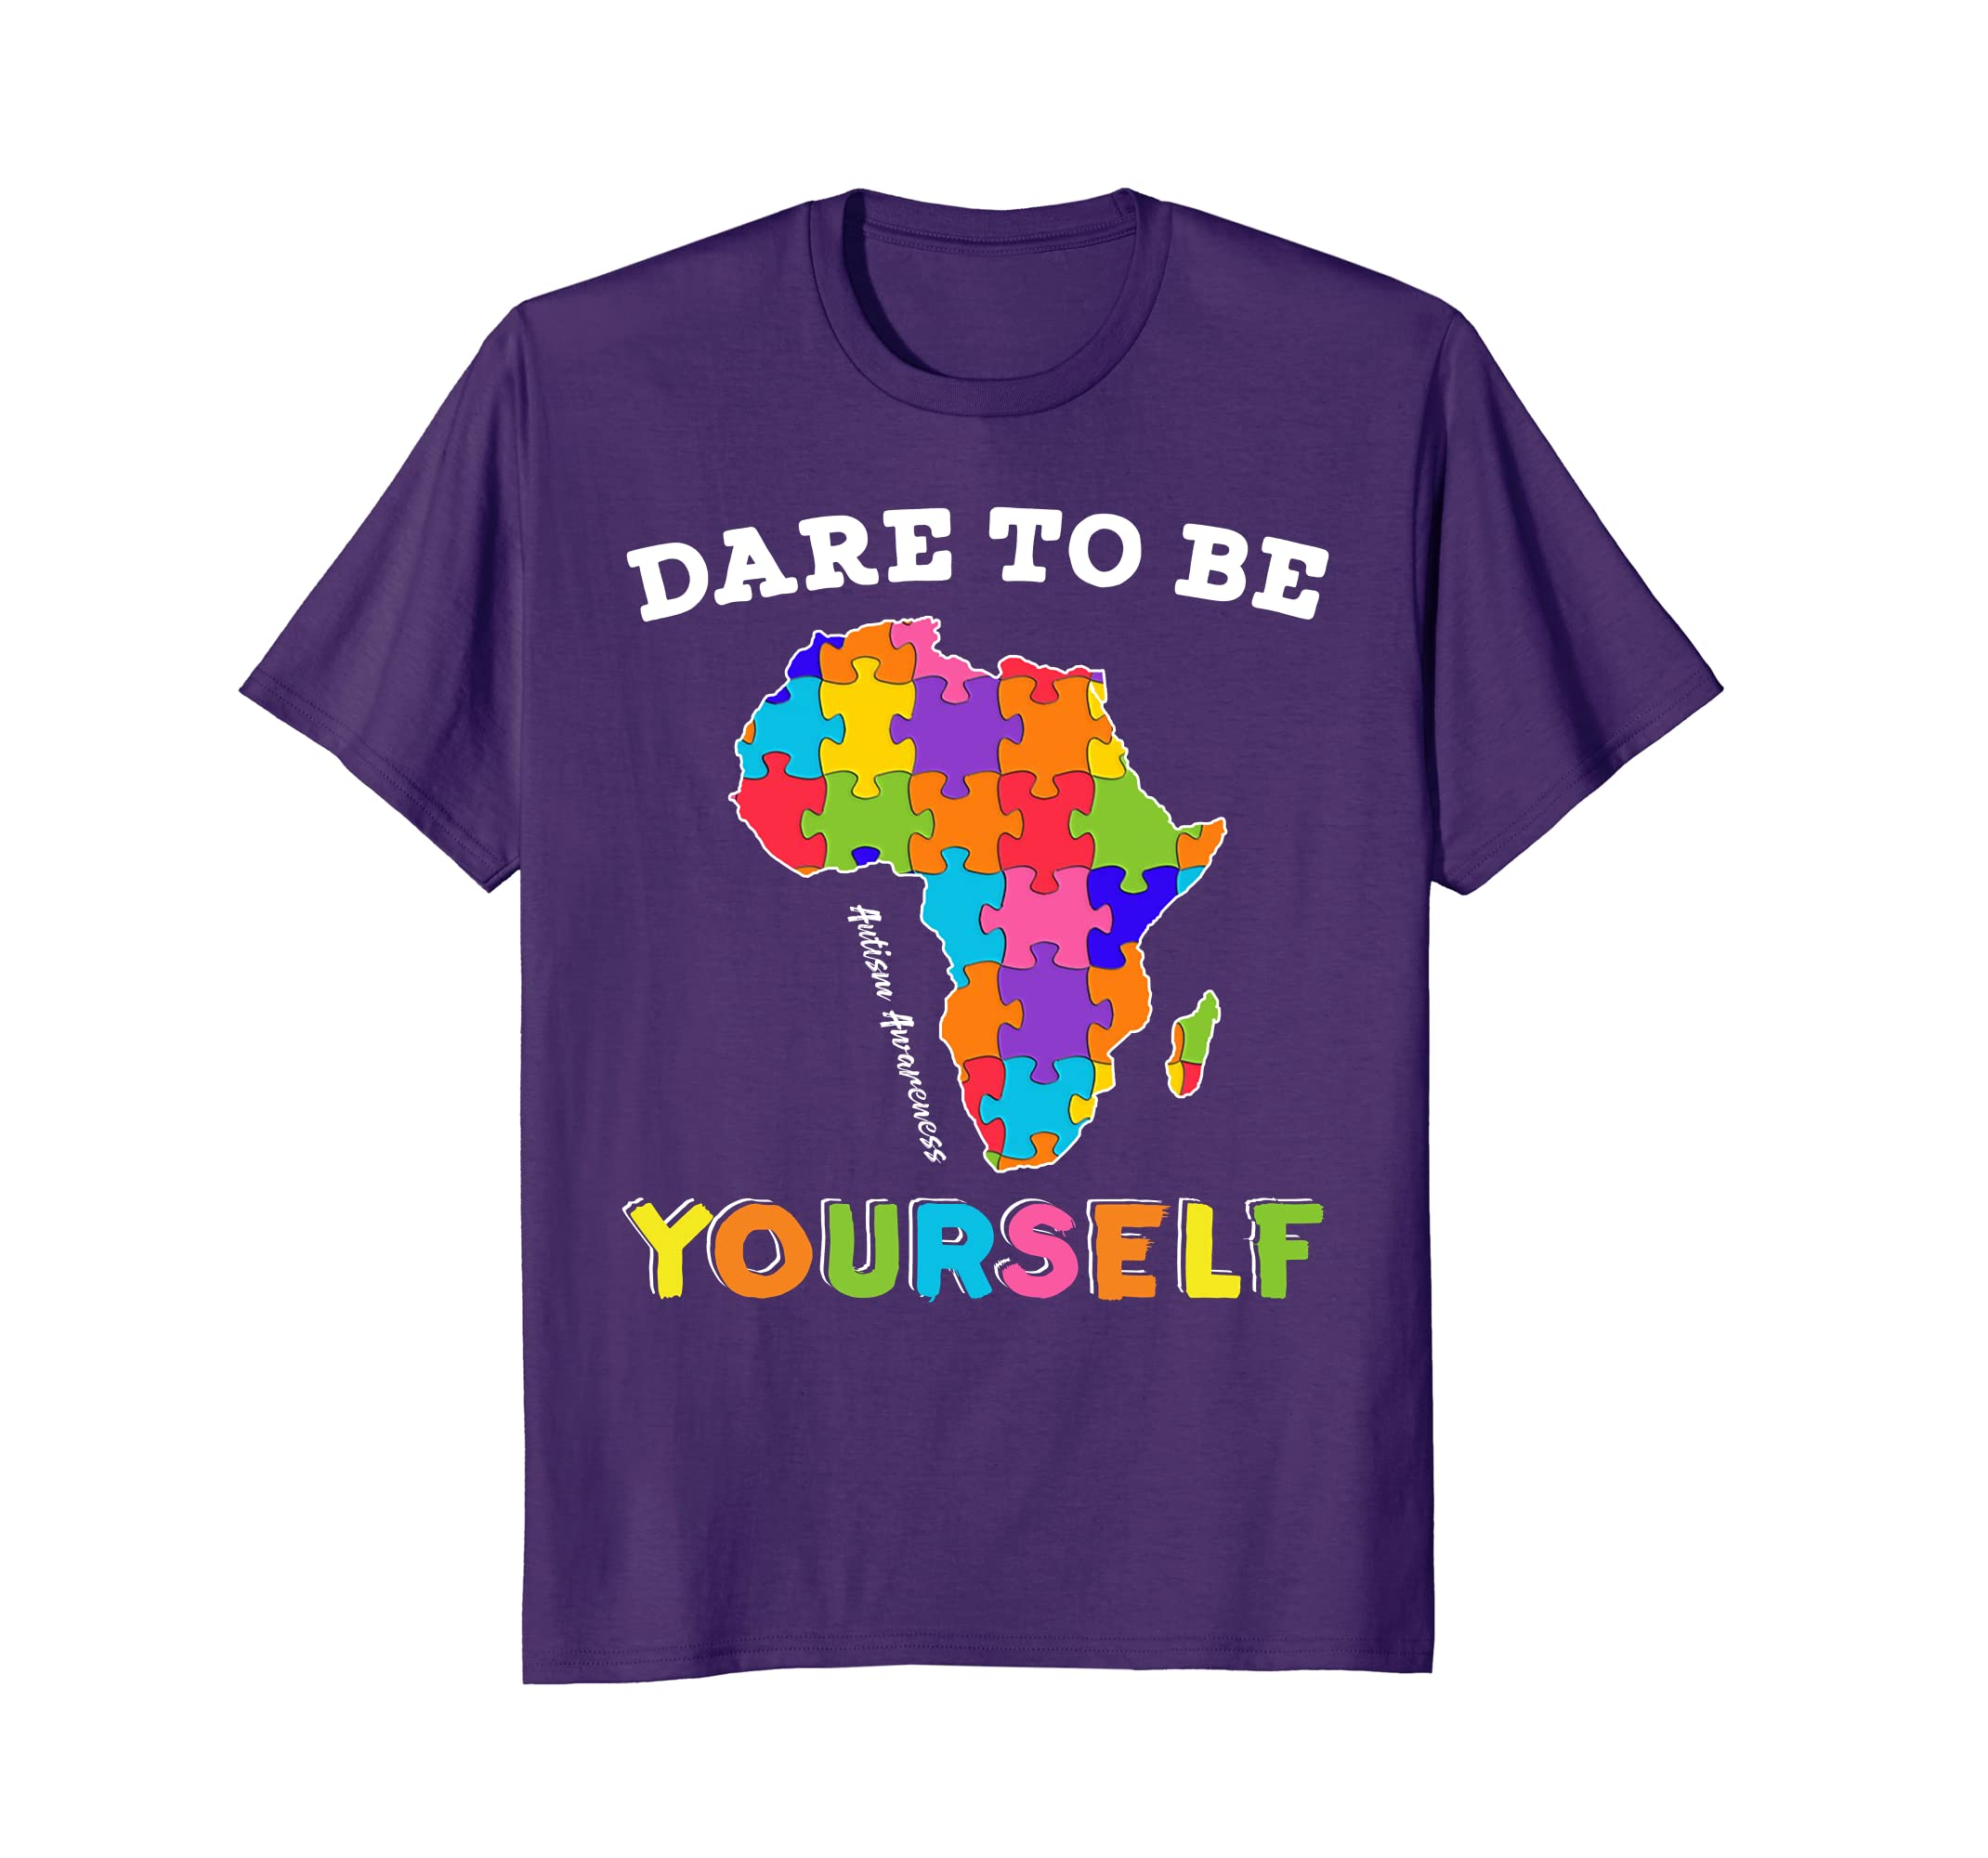 Afro Autism Awareness Dare to be Yourself Kid T-Shirt-ah my shirt one gift